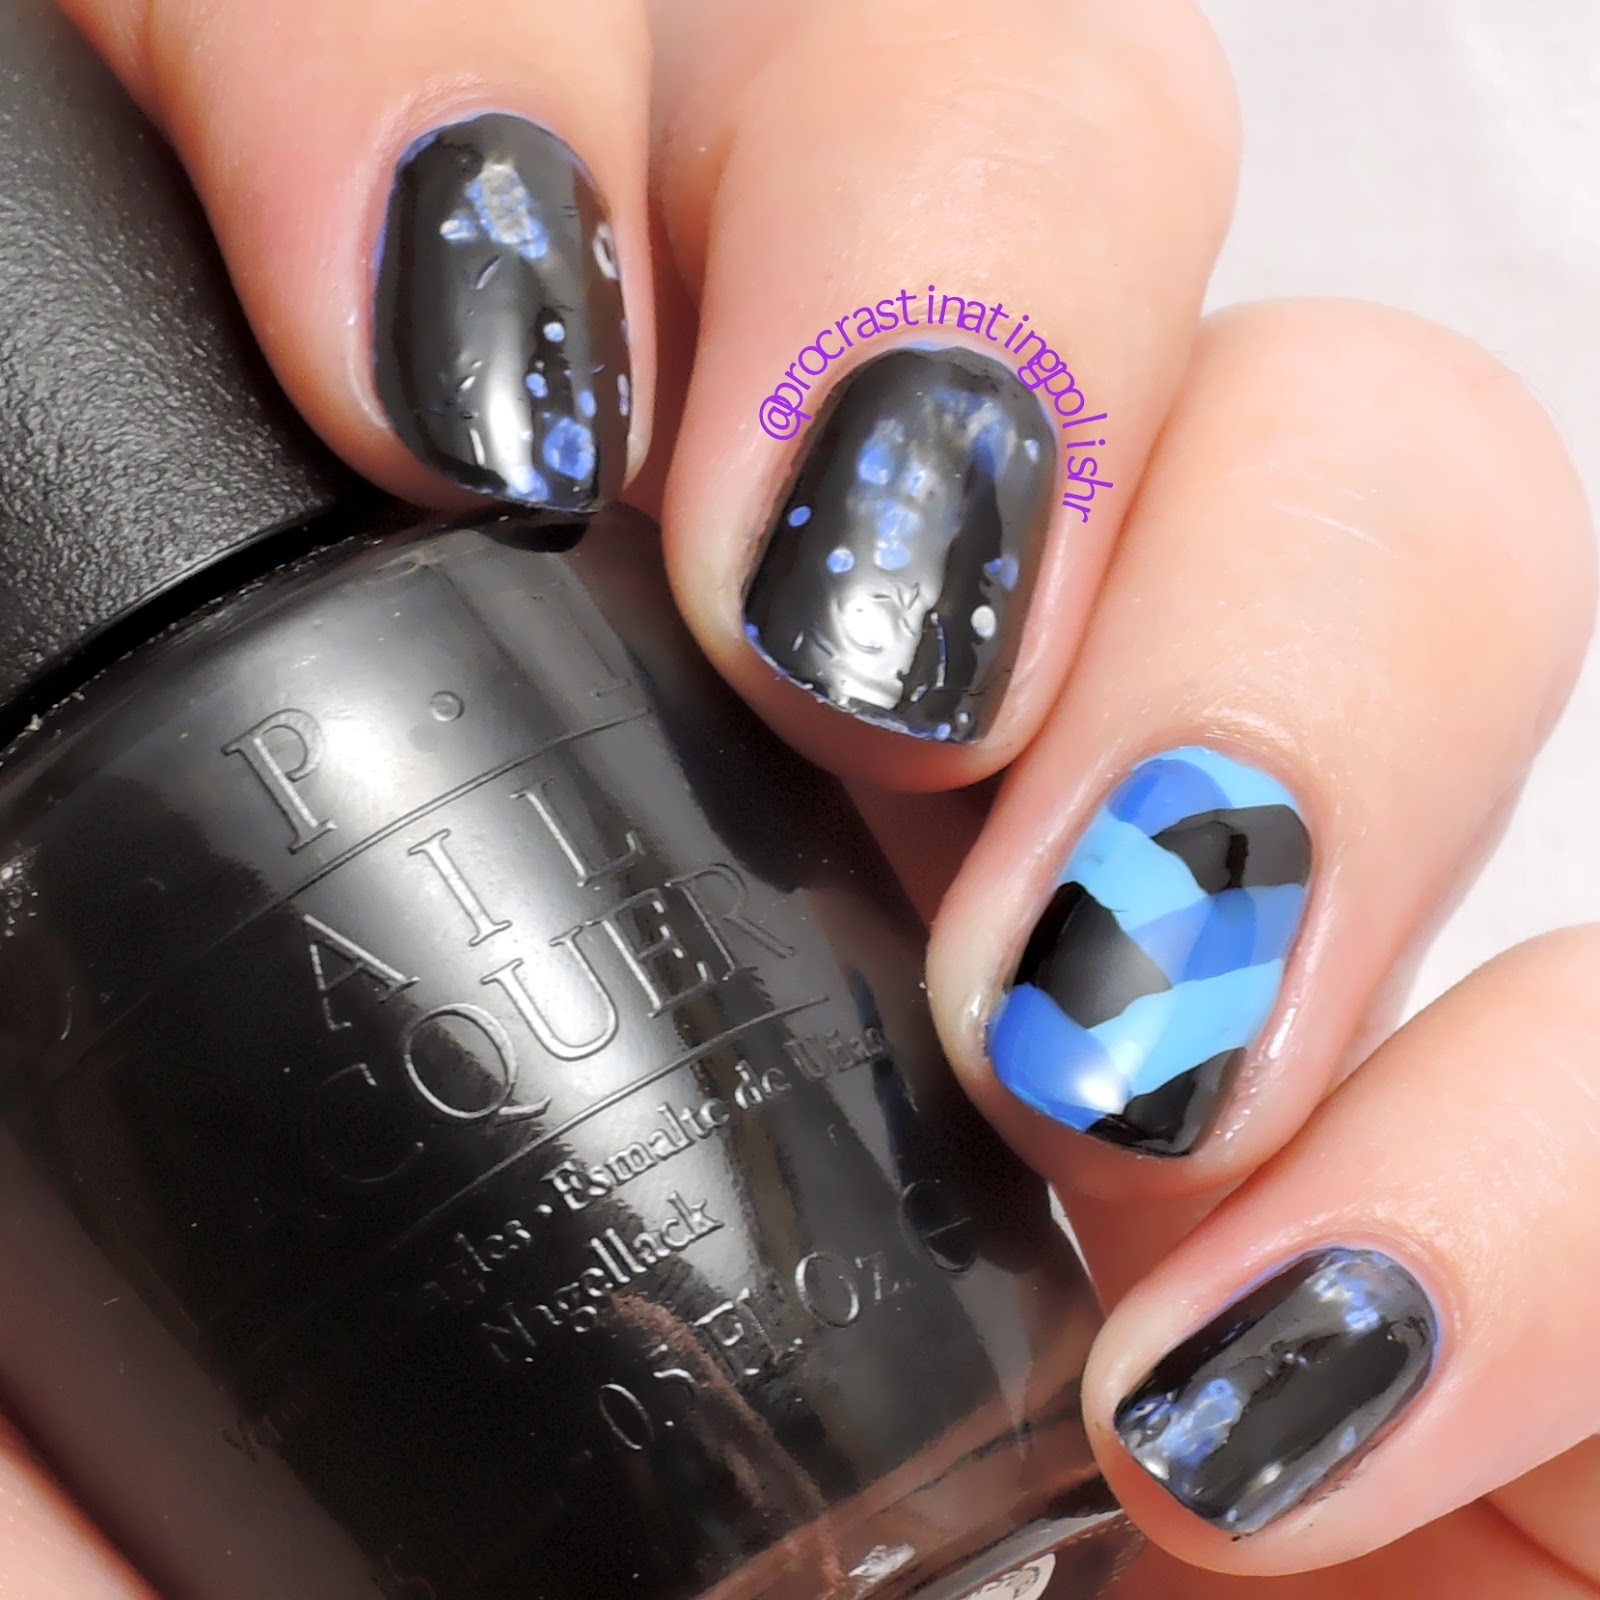 Fish braid accent nail + OPI Black Spotted